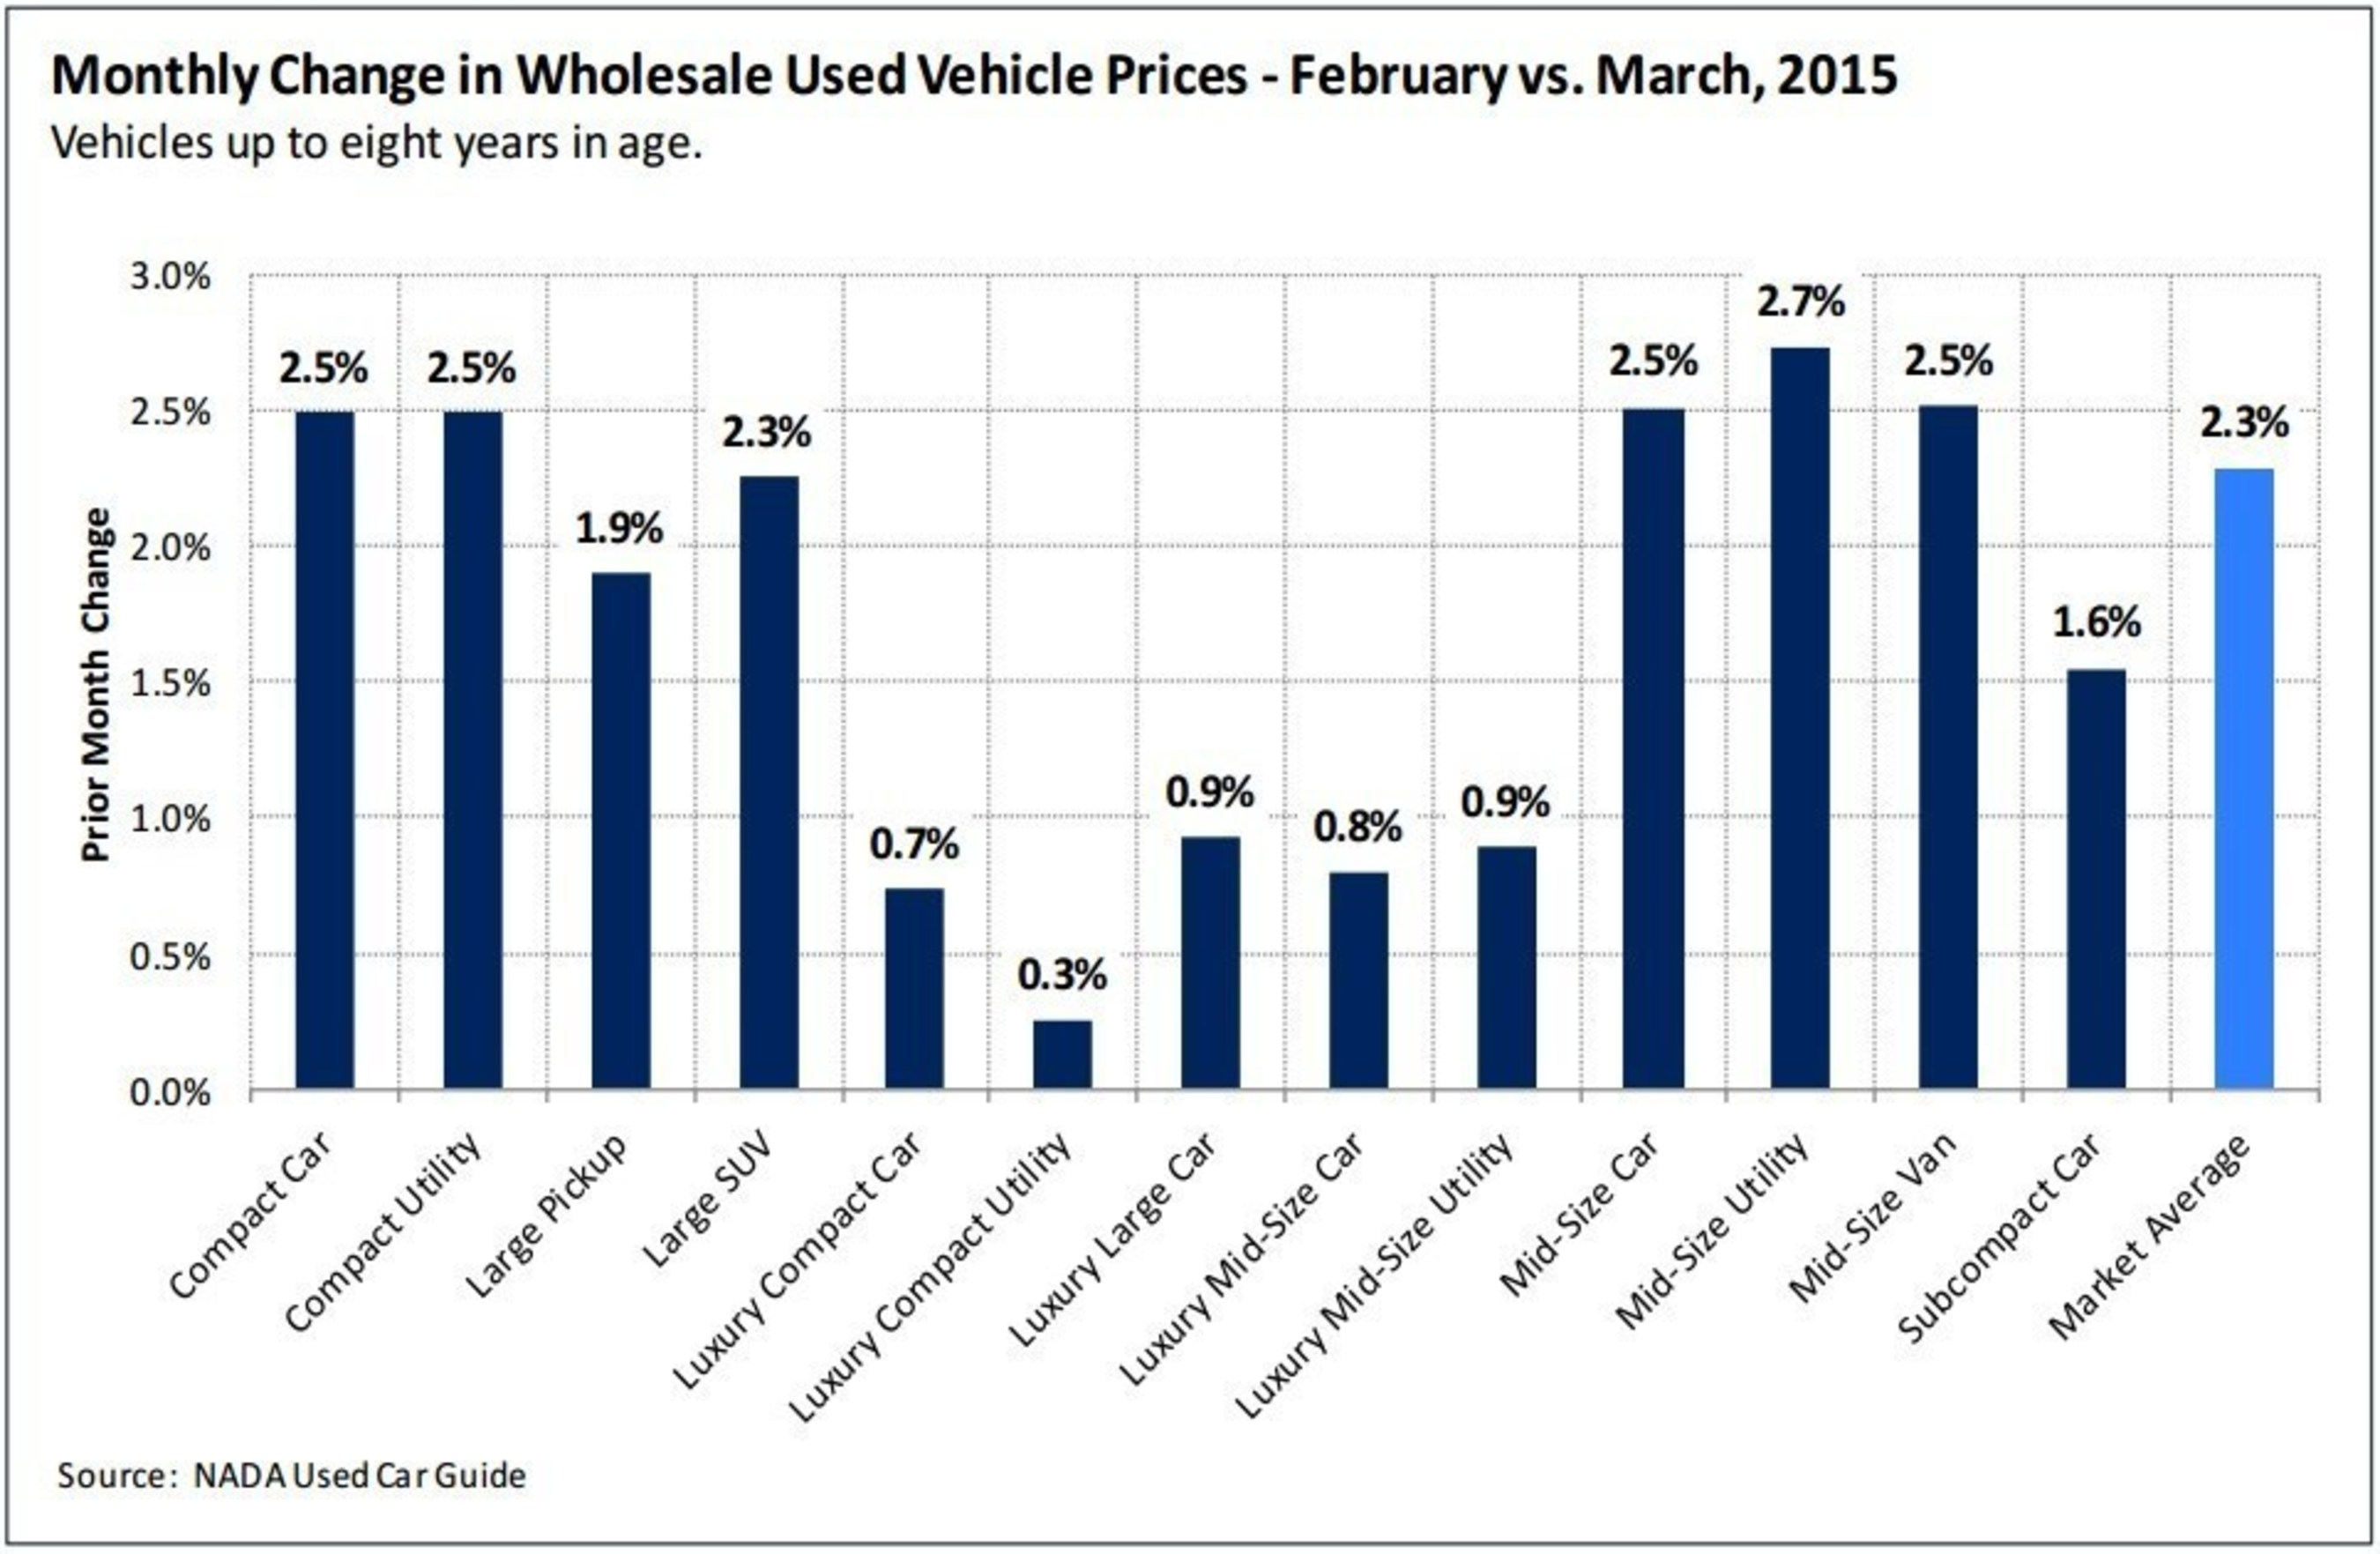 Wholesale prices grew by 2.3% in March, which is the highest increase recorded since March 2014.